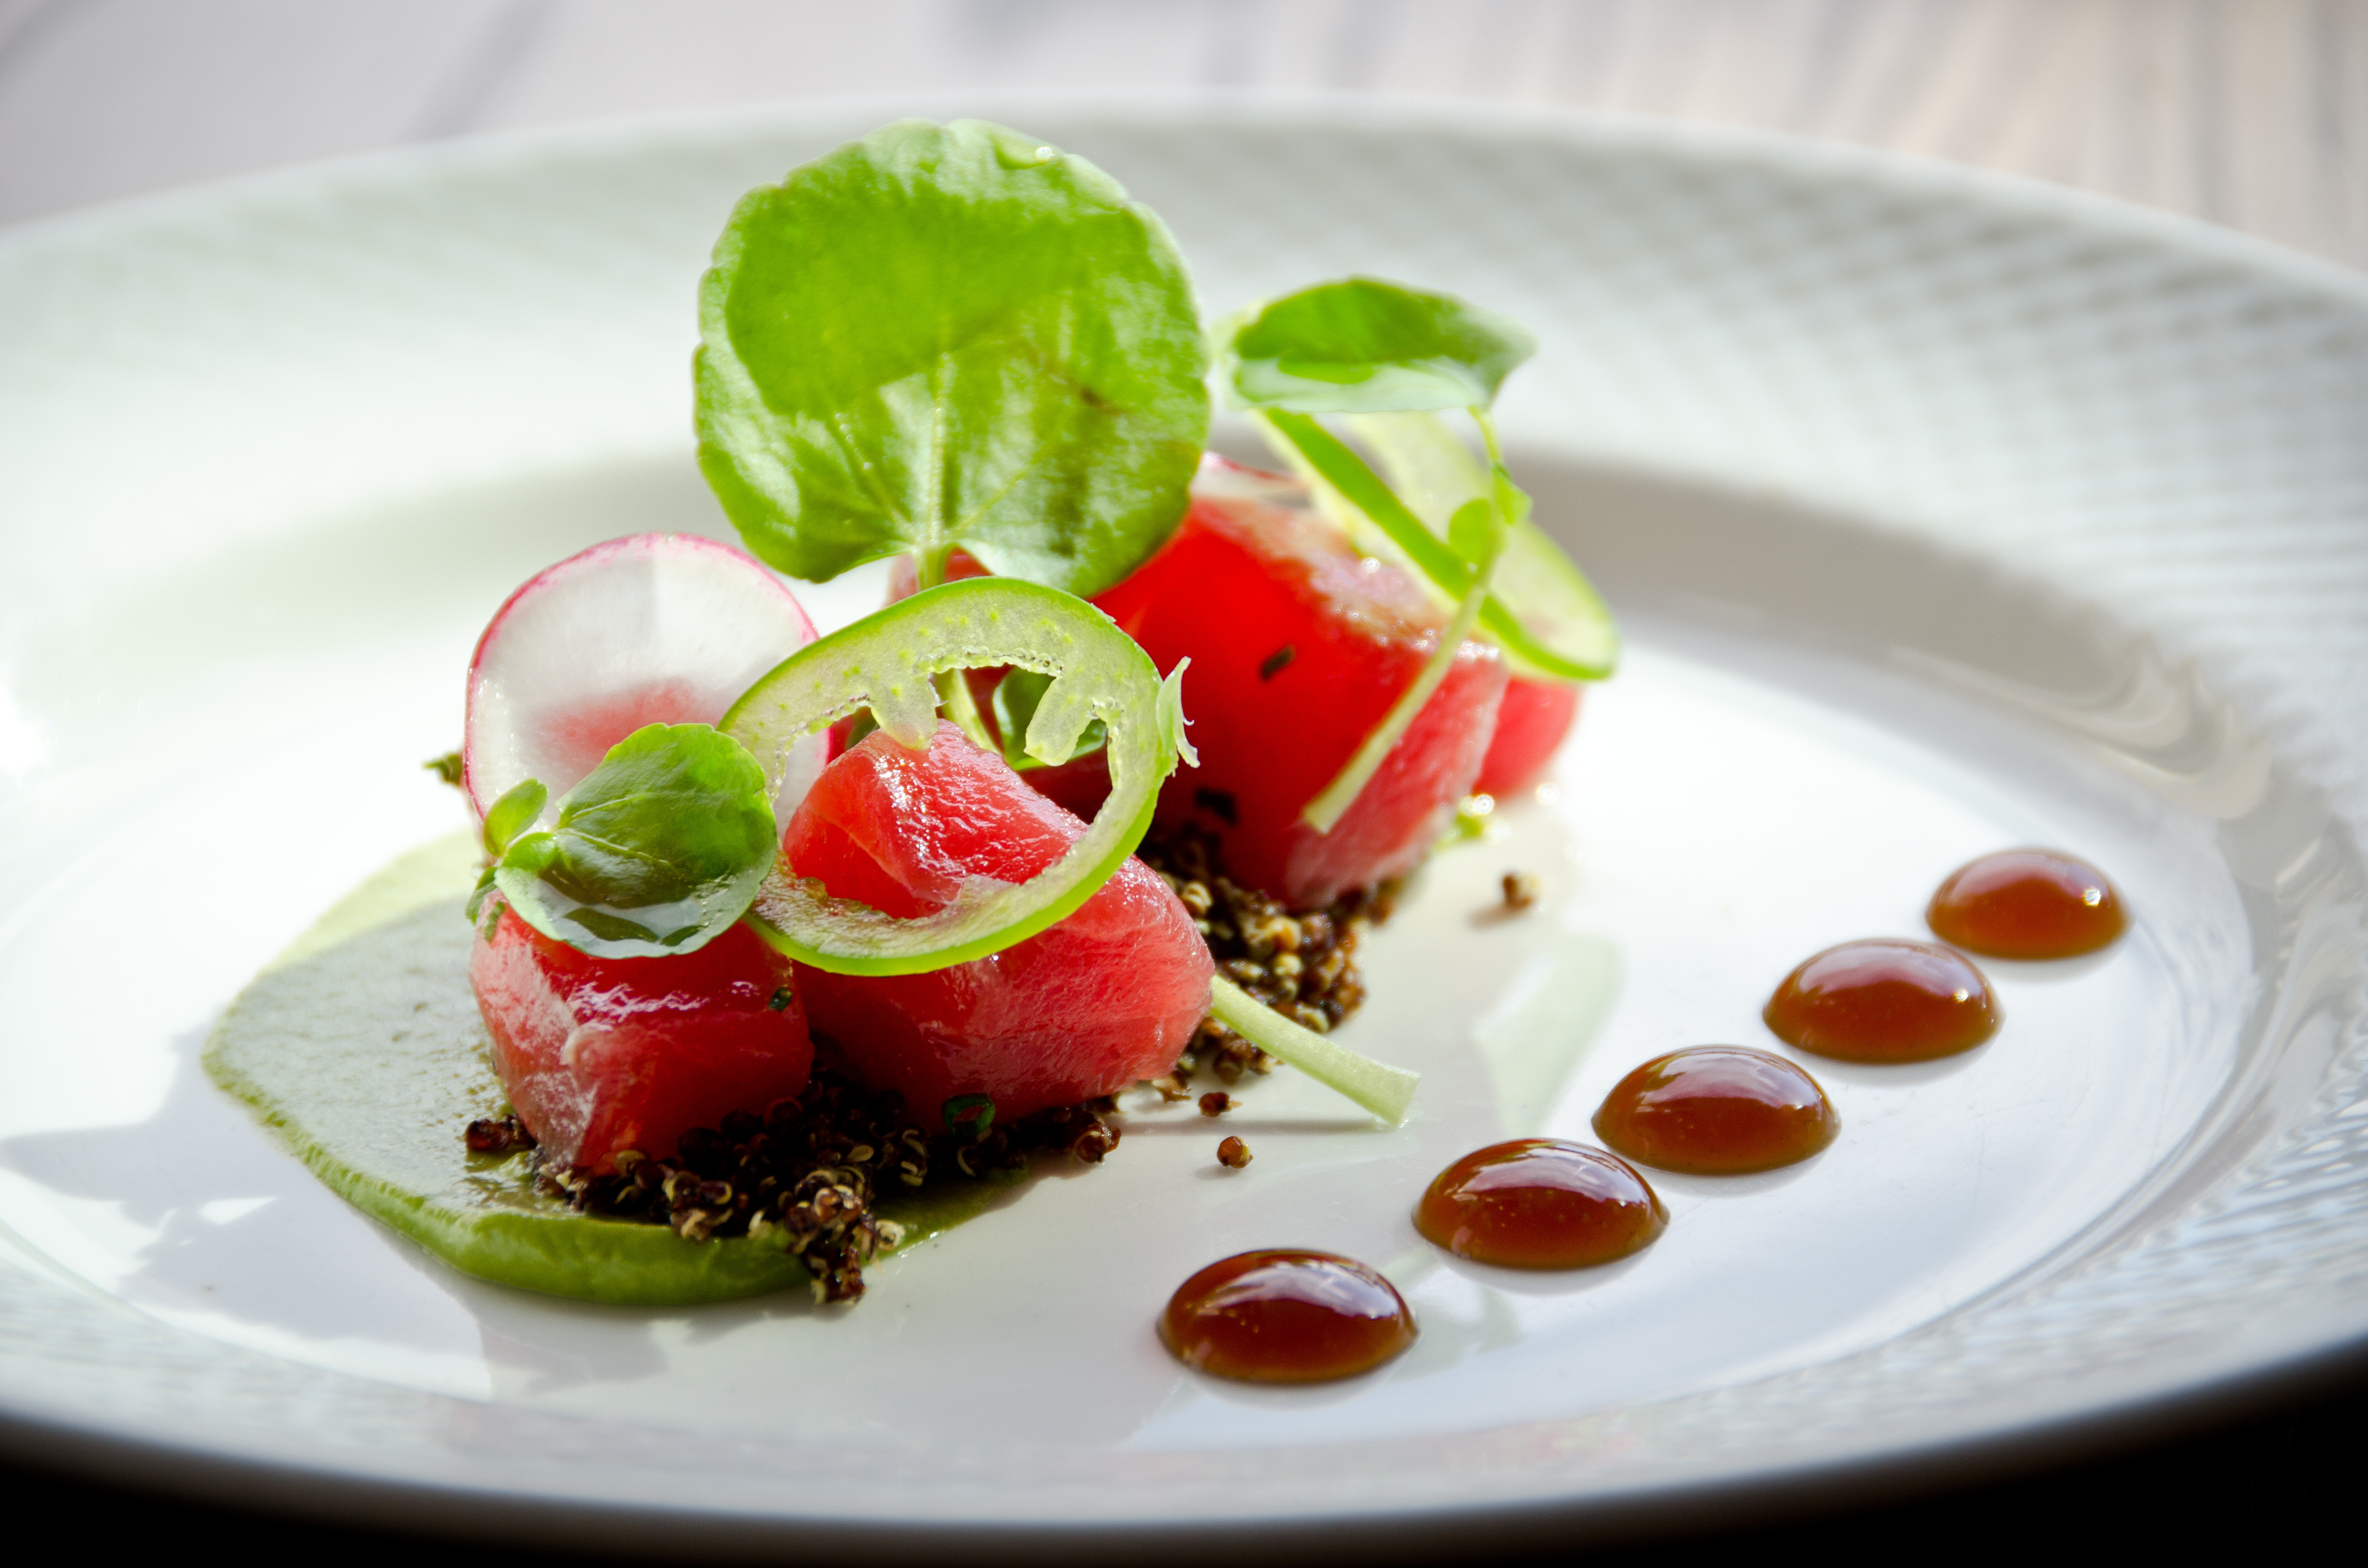 Marquee Grills Lunch Menu Delivers Big cravedfw : tuna crudo from cravedfw.com size 4928 x 3264 jpeg 2670kB